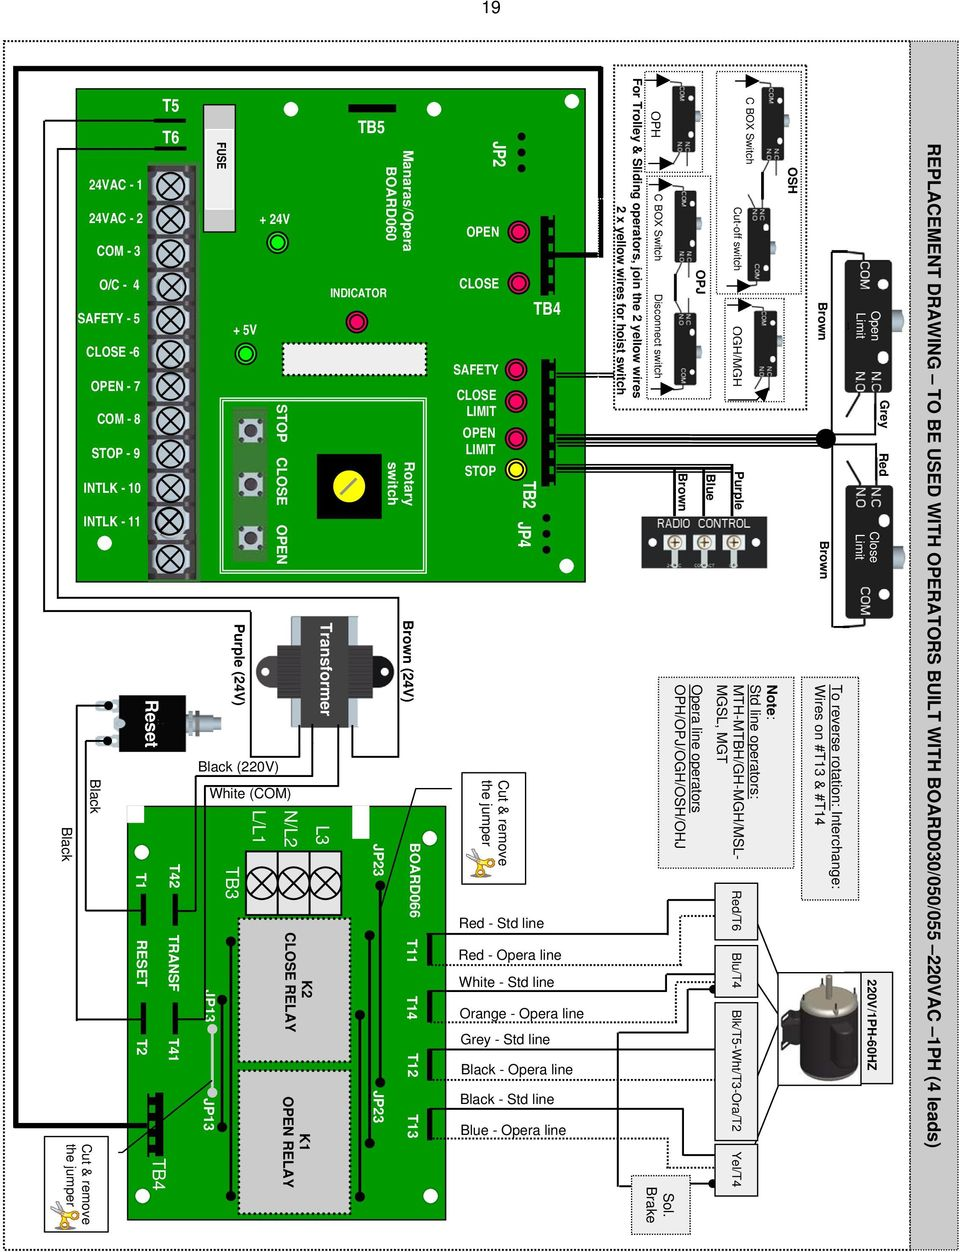 Model Date Wiring Diagram Door No Pdf 220v Disconnect Switch T13 Open Close Safety Limit Stop Jp2 Cut Remove The Jumper Tb2